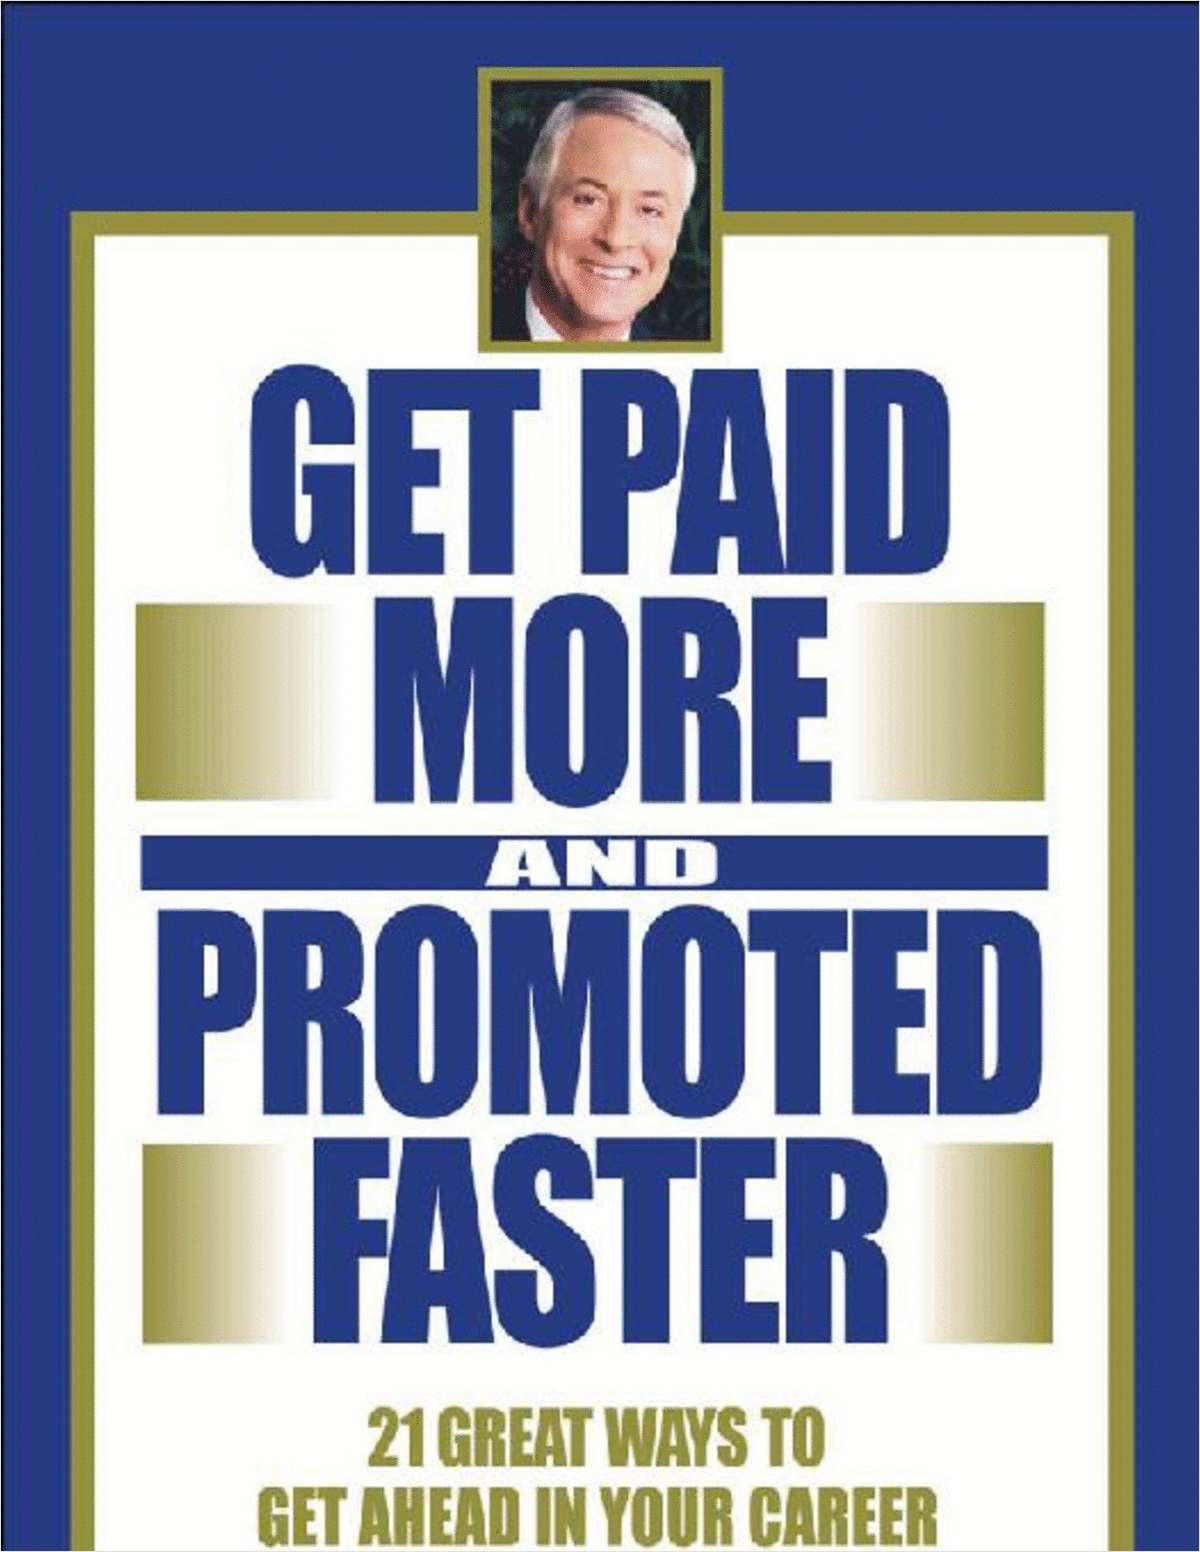 Get Paid More and Promoted Faster - 21 Great Ways to Get Ahead in Your Career (FREE Excerpt)